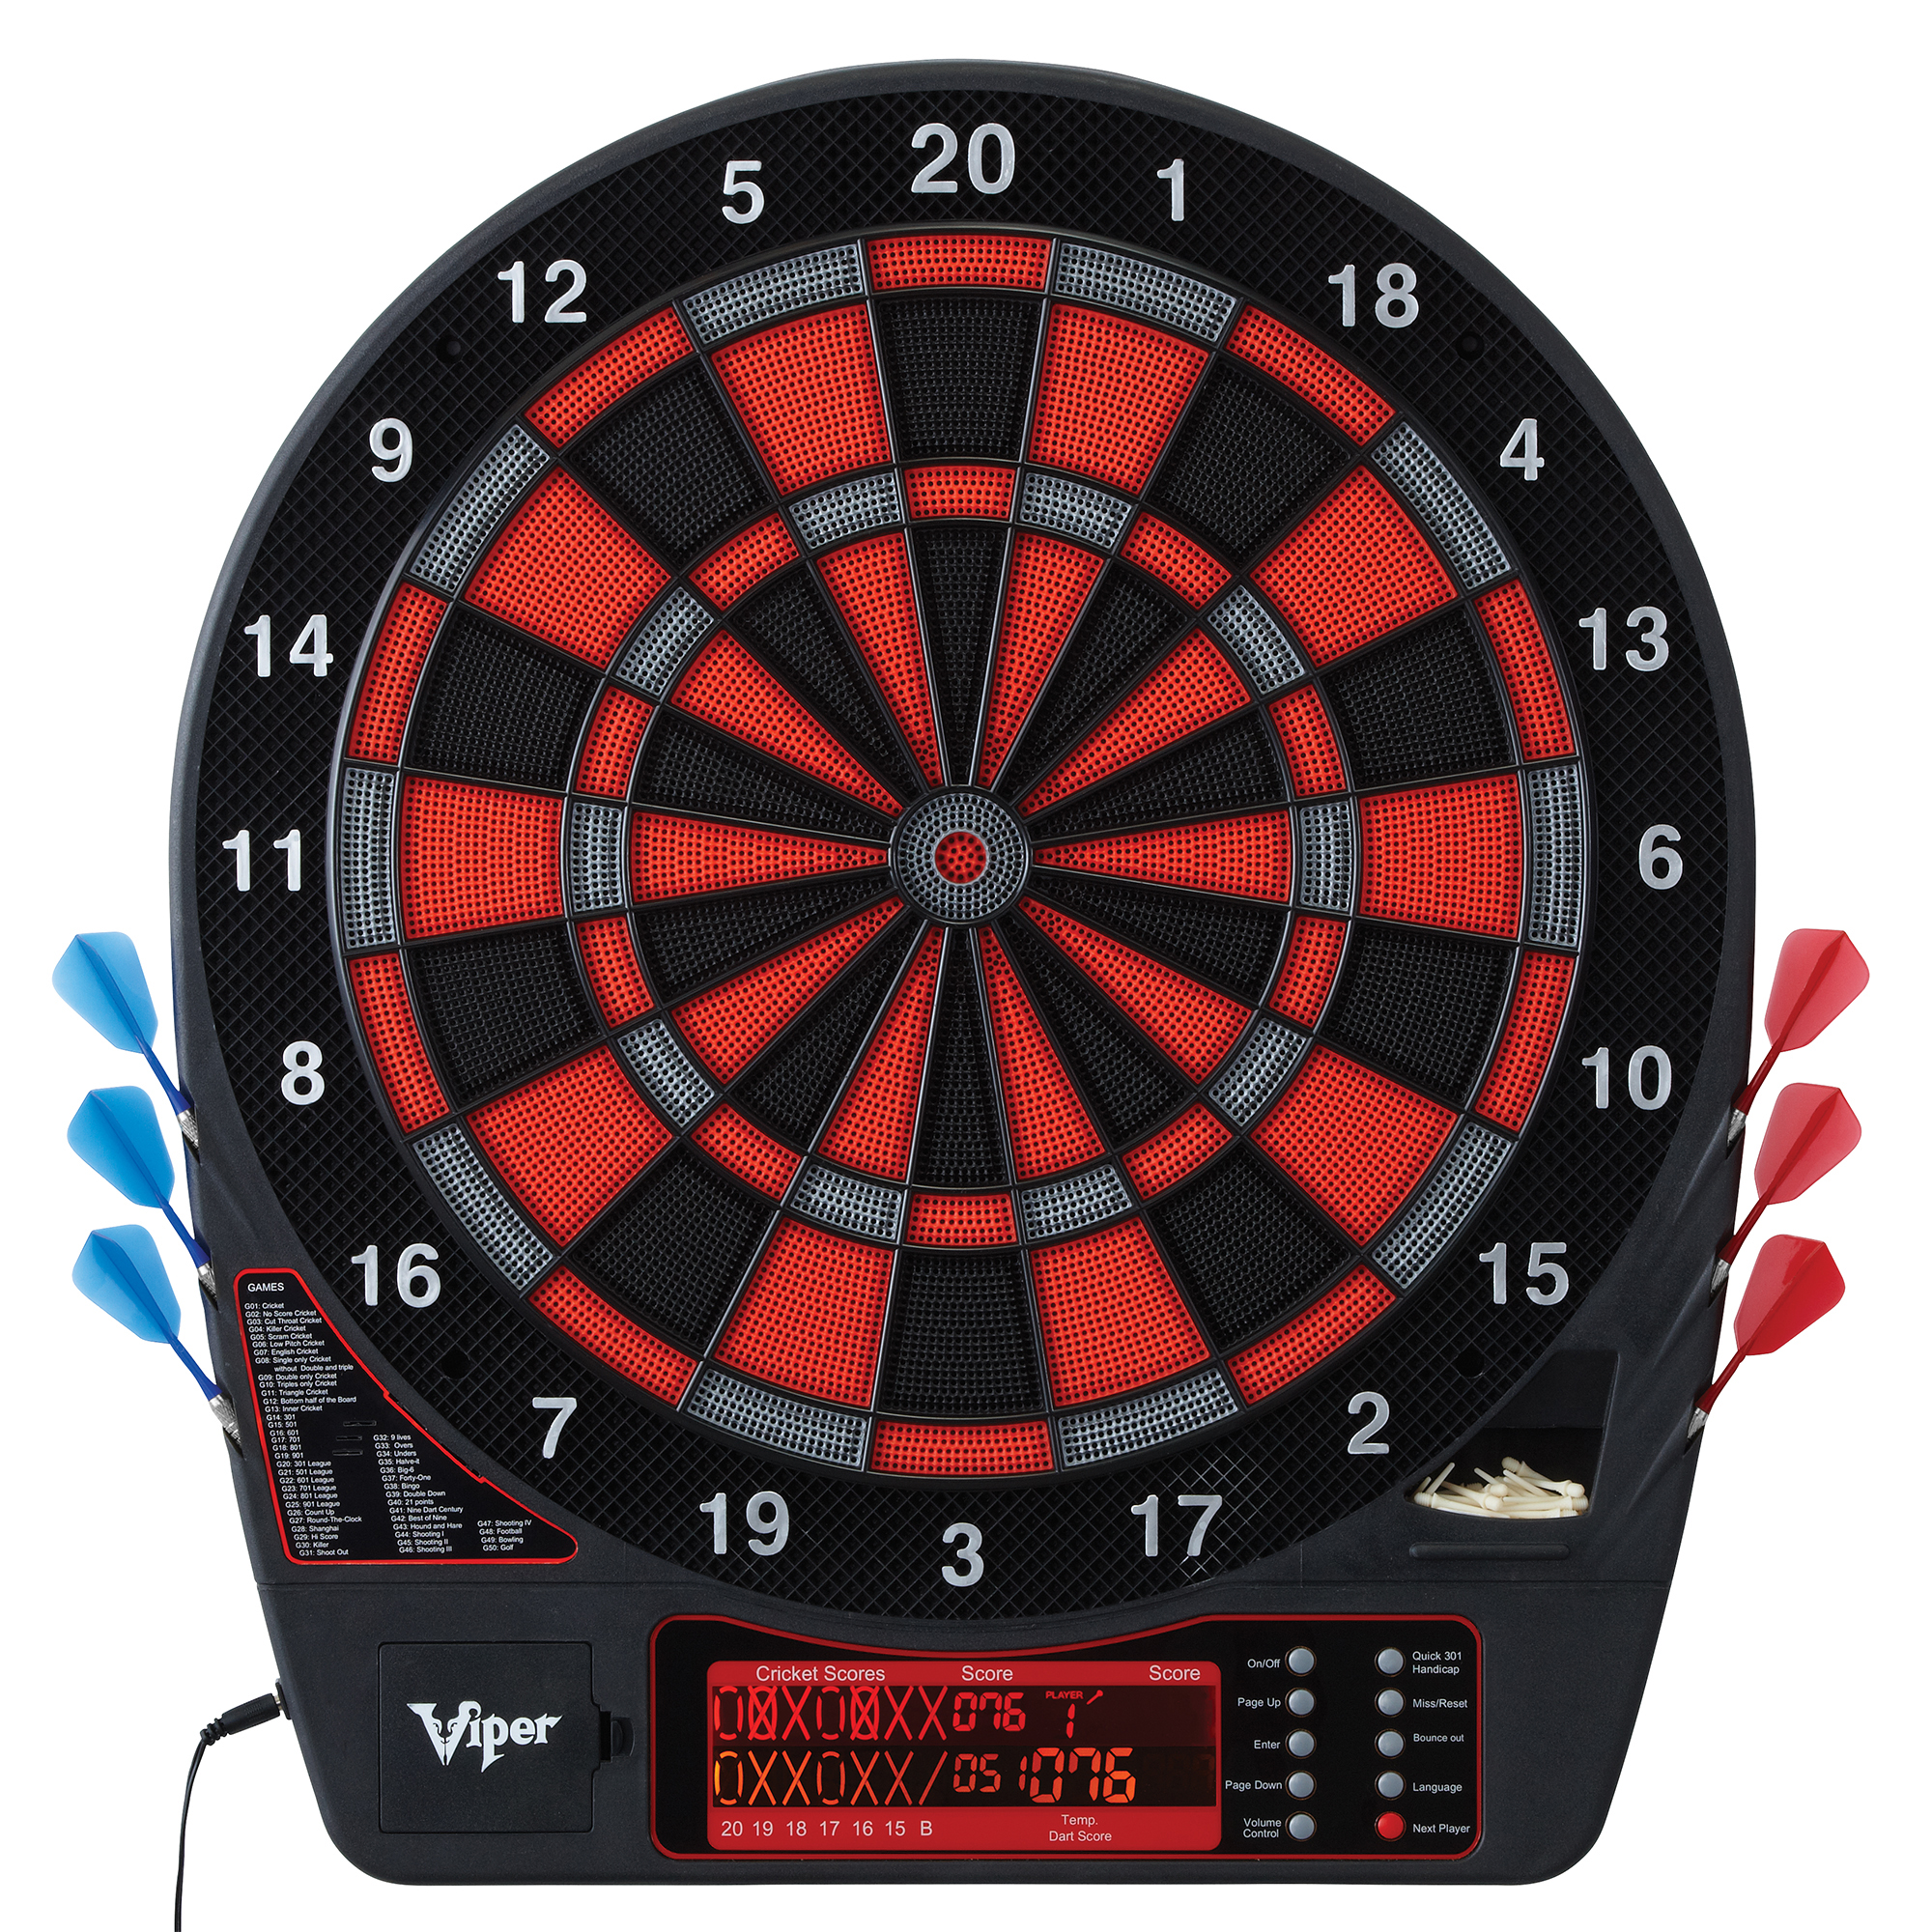 Viper Specter Electronic Soft Tip Dartboard Cabinet Set With Darts